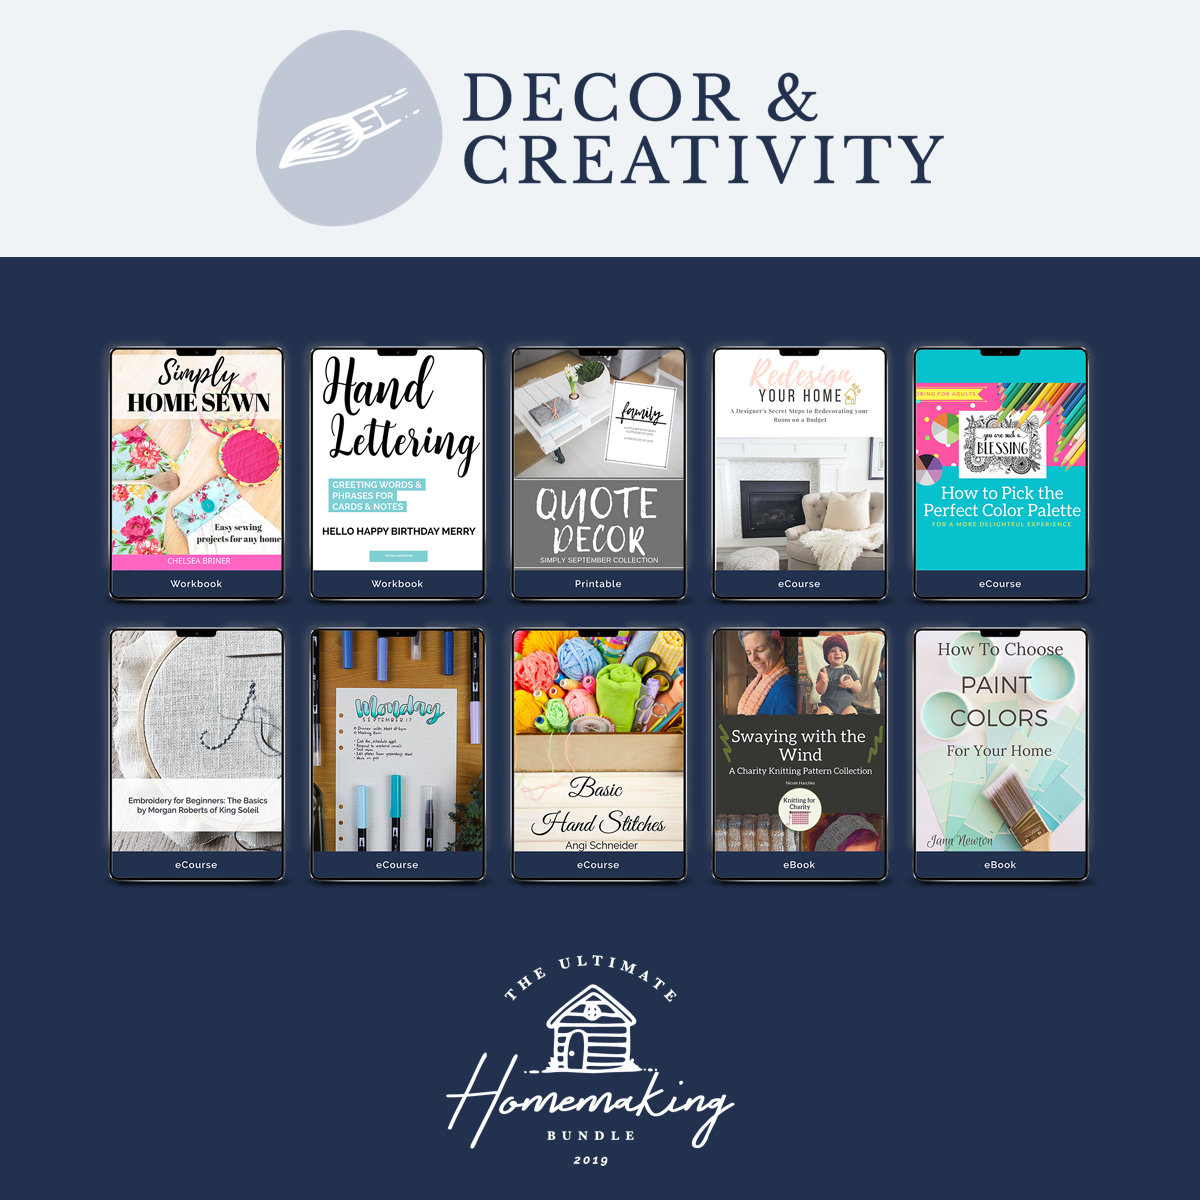 creativity & decor products in ultimate homemaking bundle